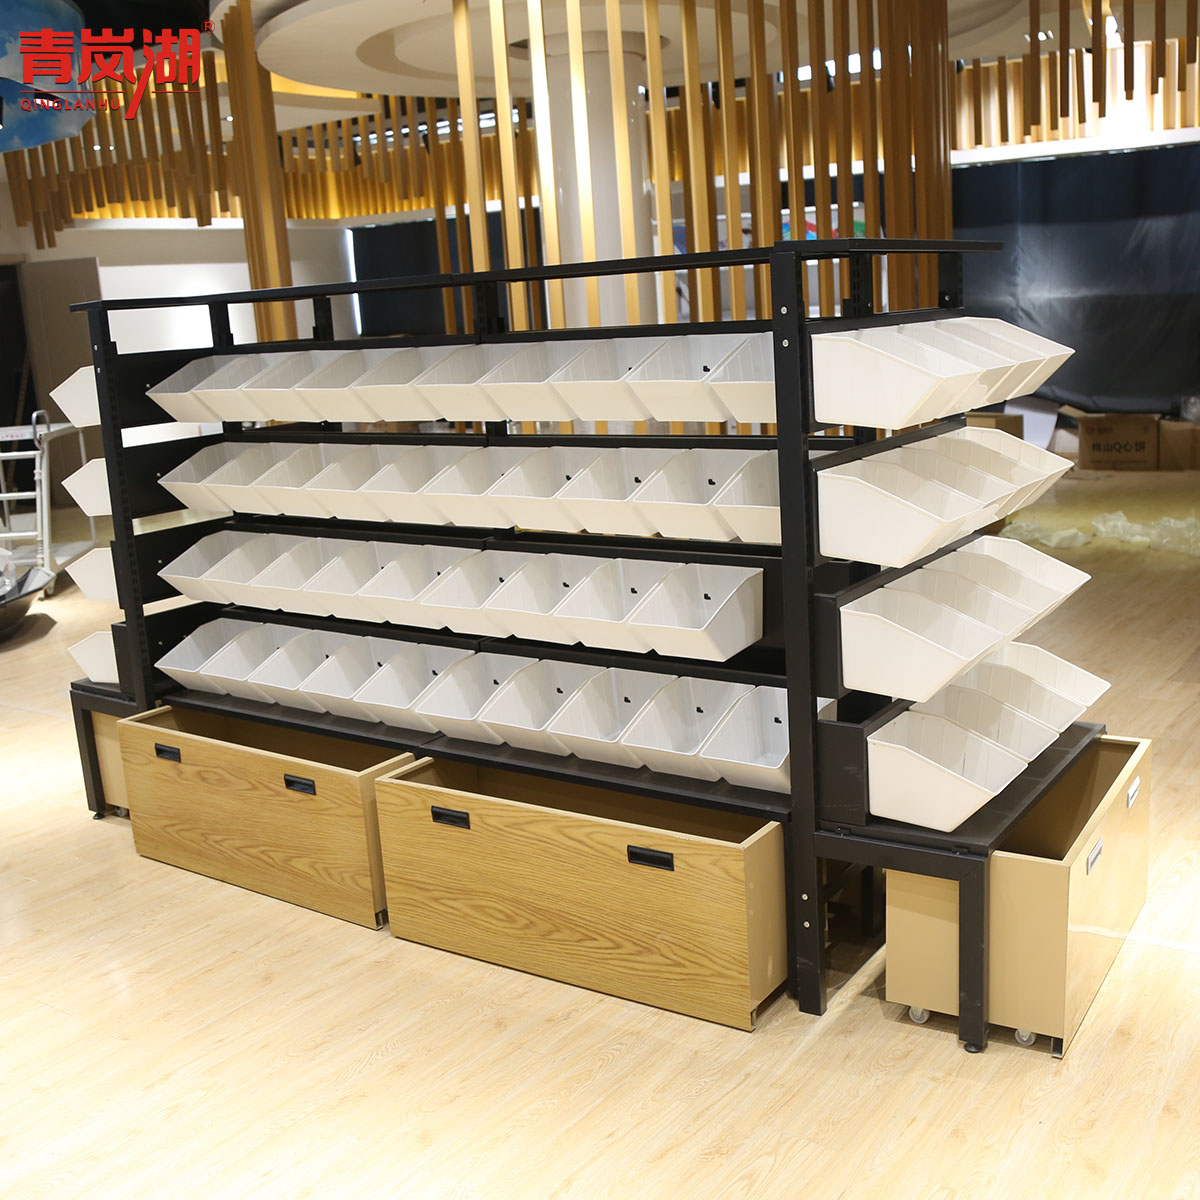 wire cyomqxjtjevh display retail snack china metal product rack candy supermarket adjustable stand